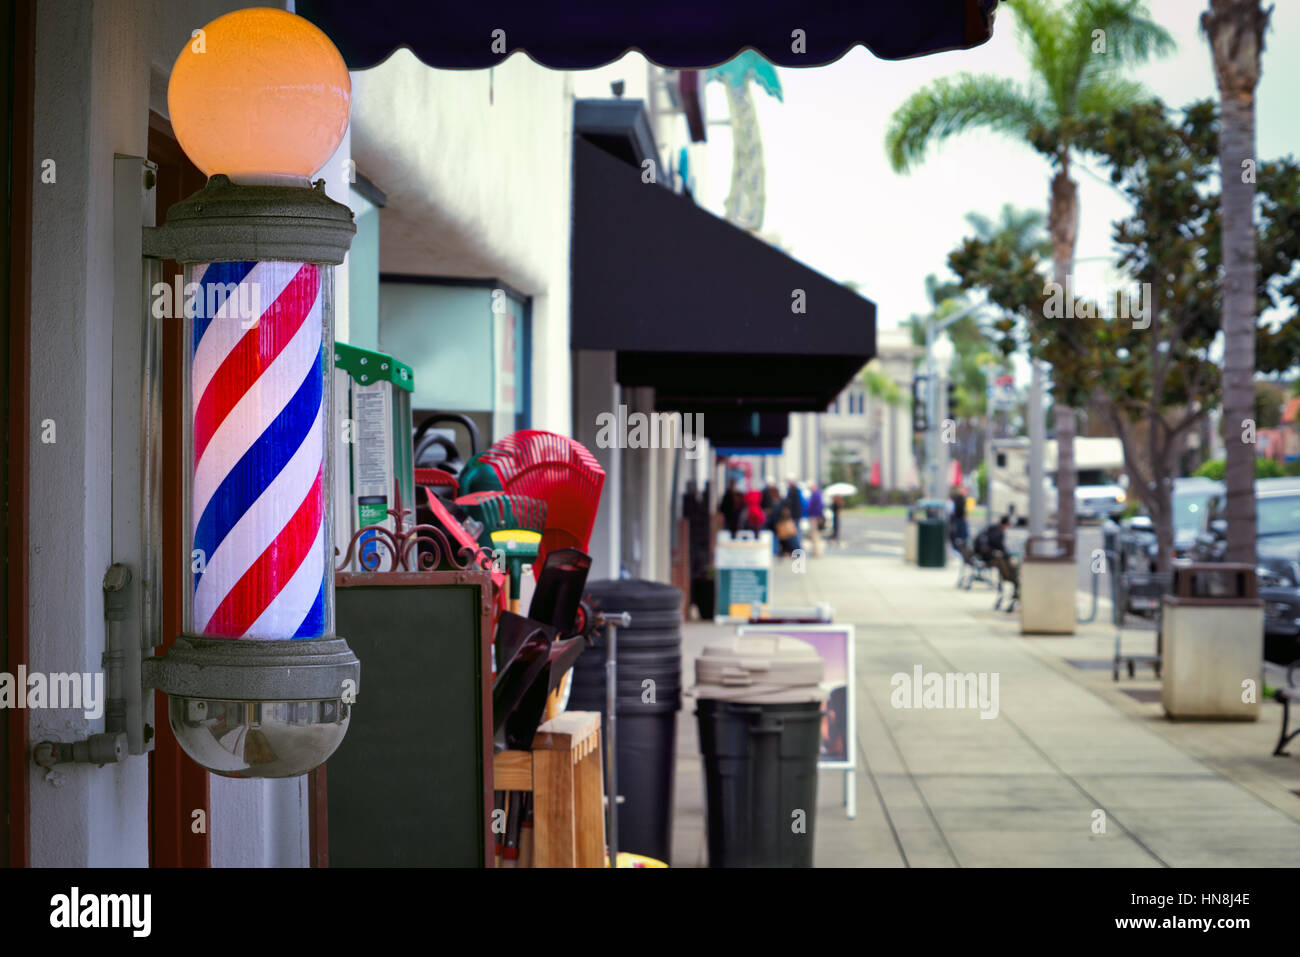 A southern California barber shop. - Stock Image